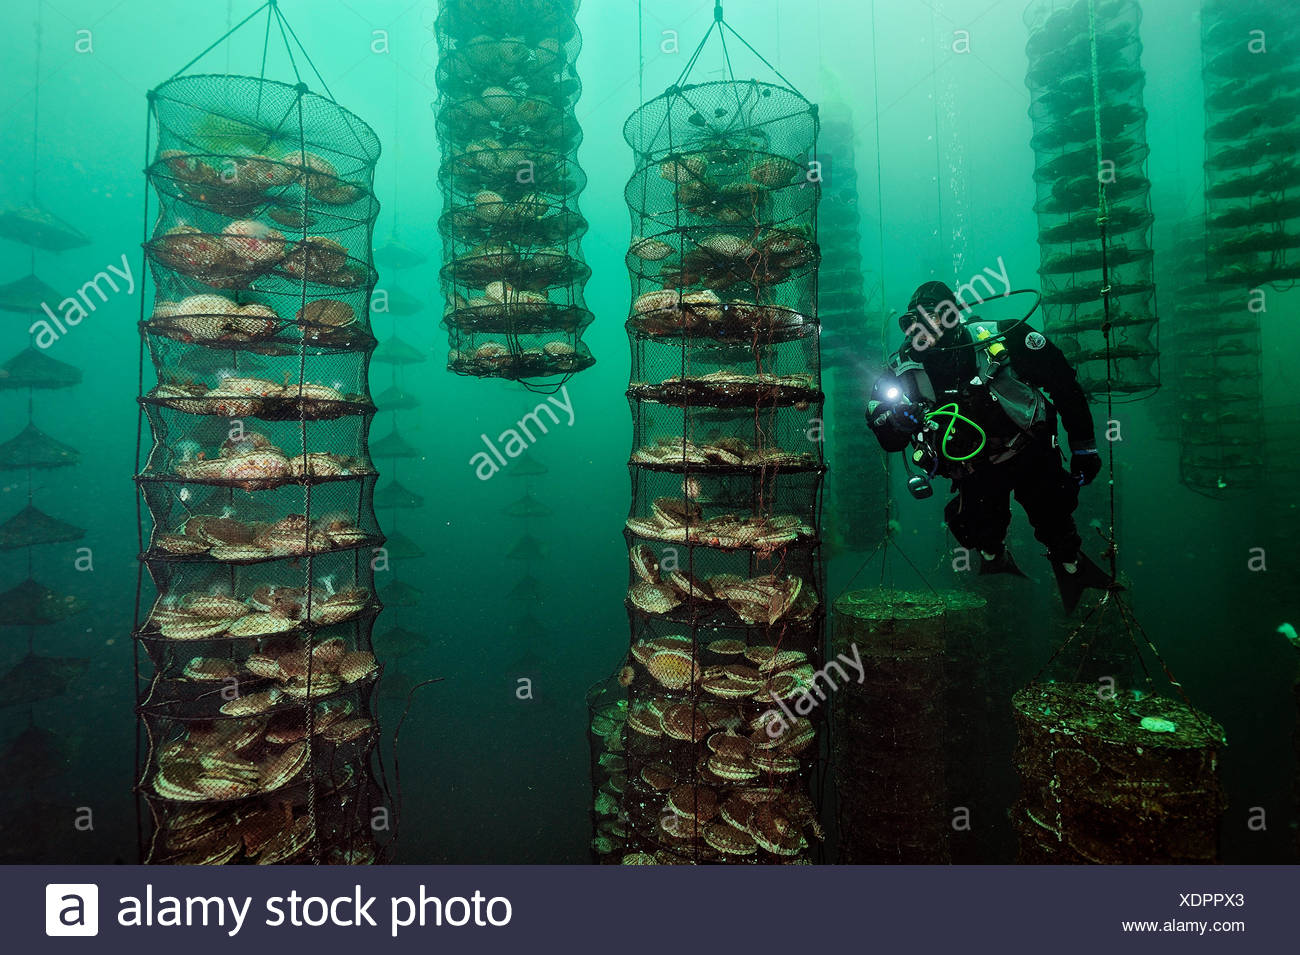 Giant Japanese scallops thrive on fish waste at an experimental farm off Canada's Vancouver Island. - Stock Image